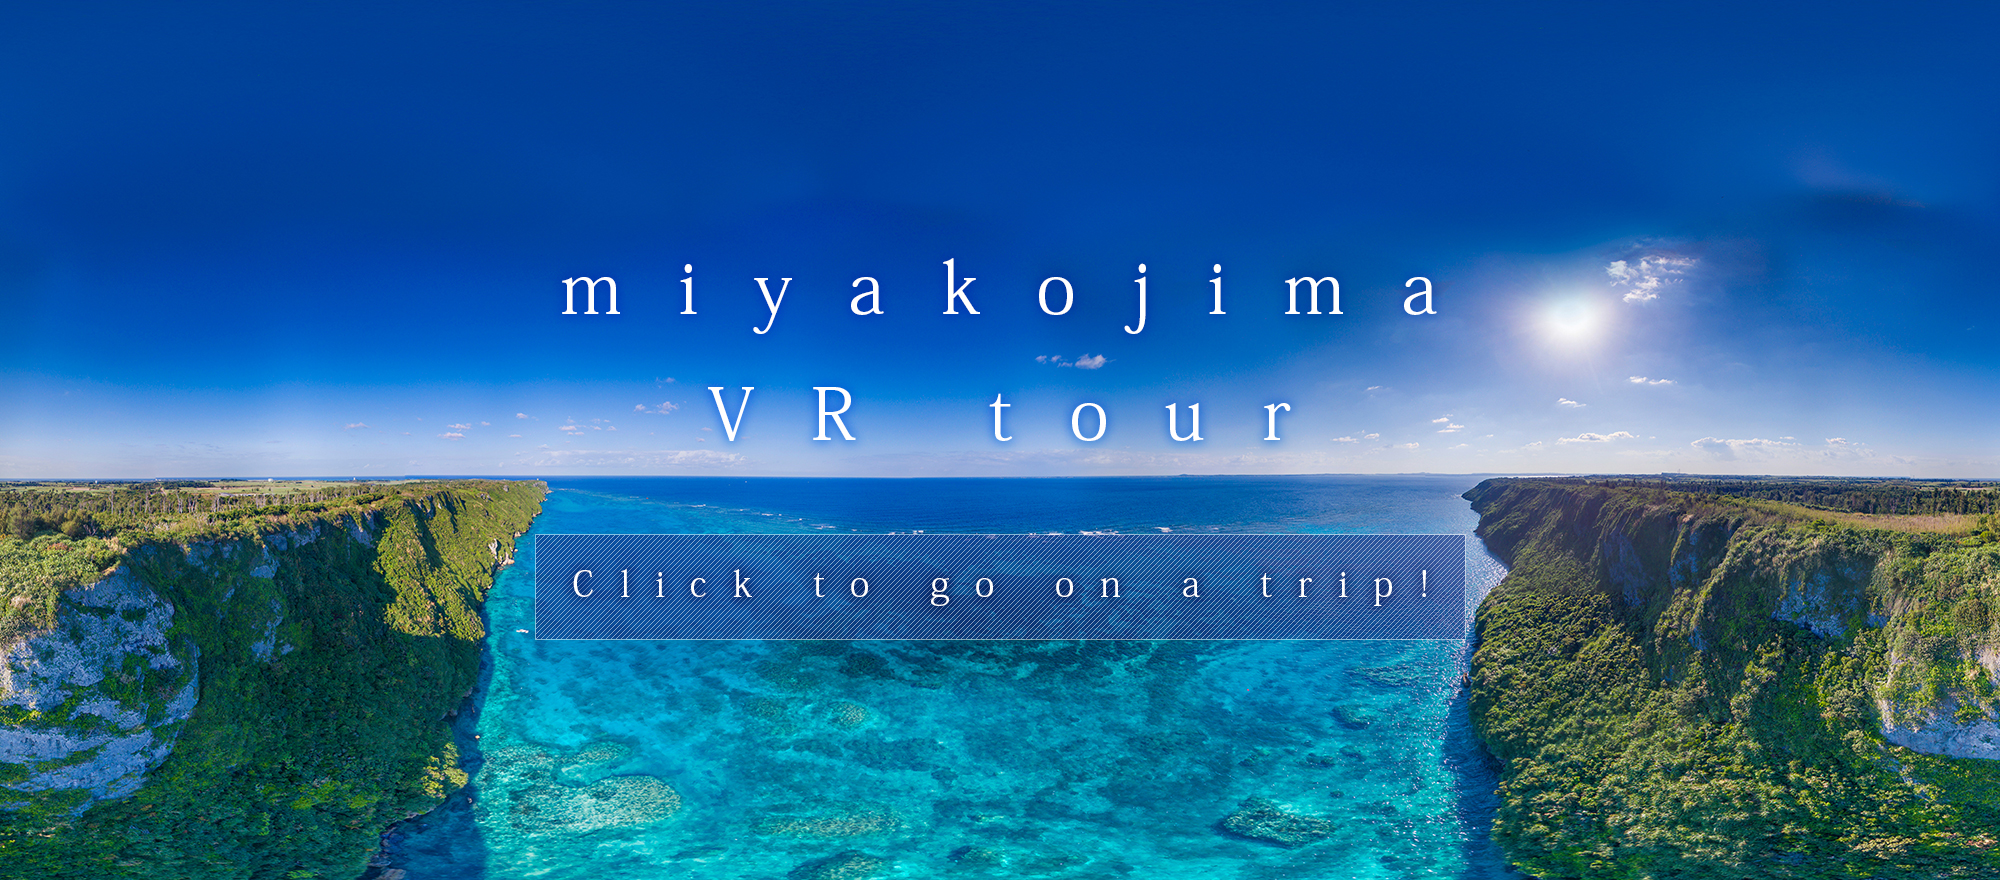 Miyakojima VR Tour (virtual reality tour)